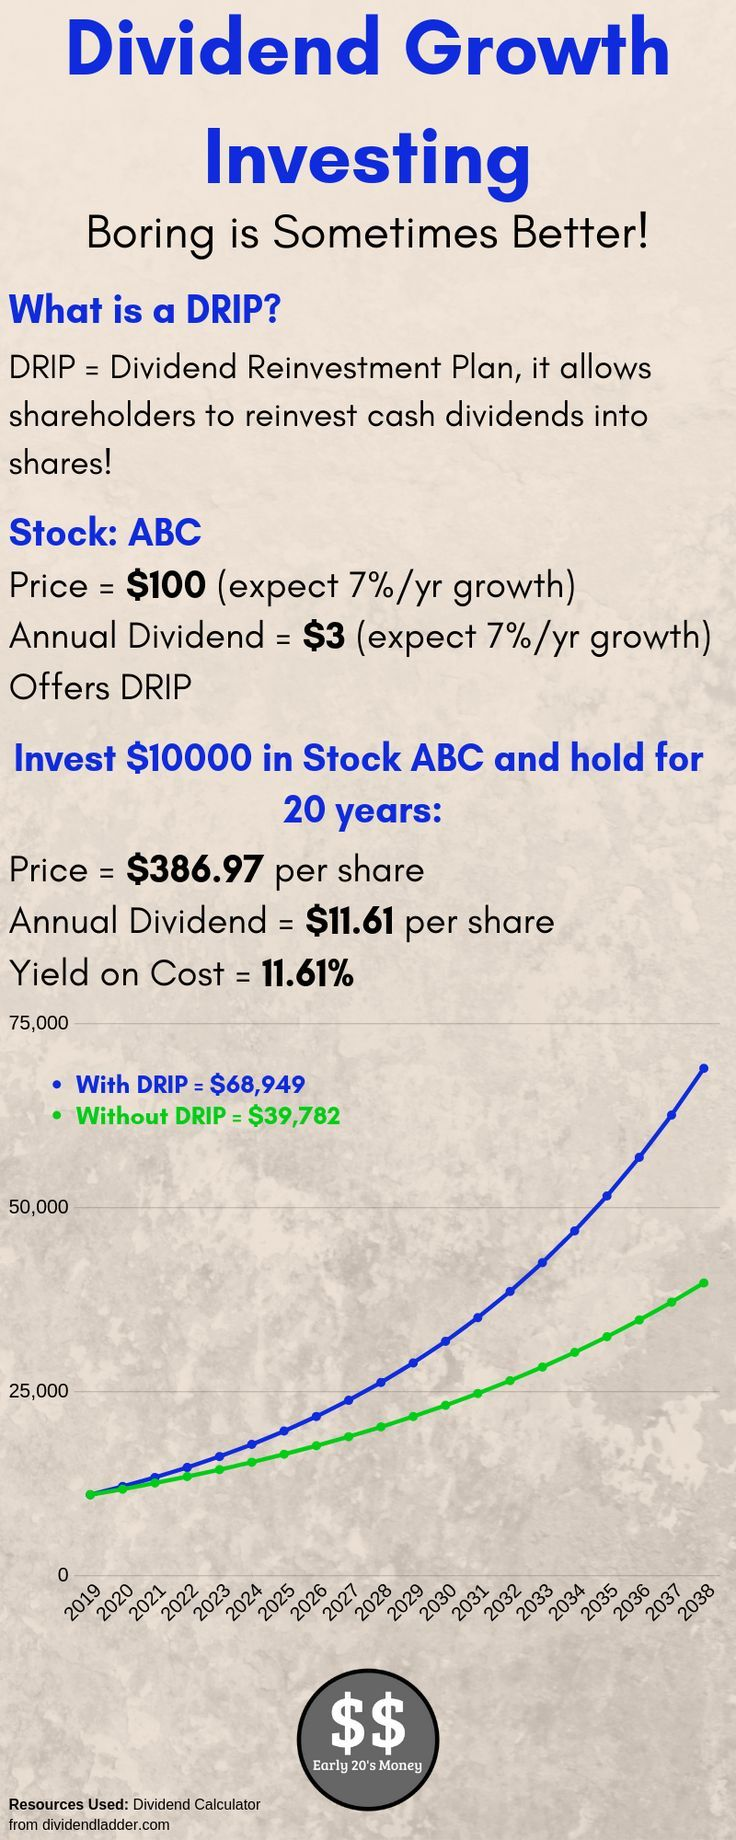 Dividend Growth Investing Is An Investing Strategy That Greatly